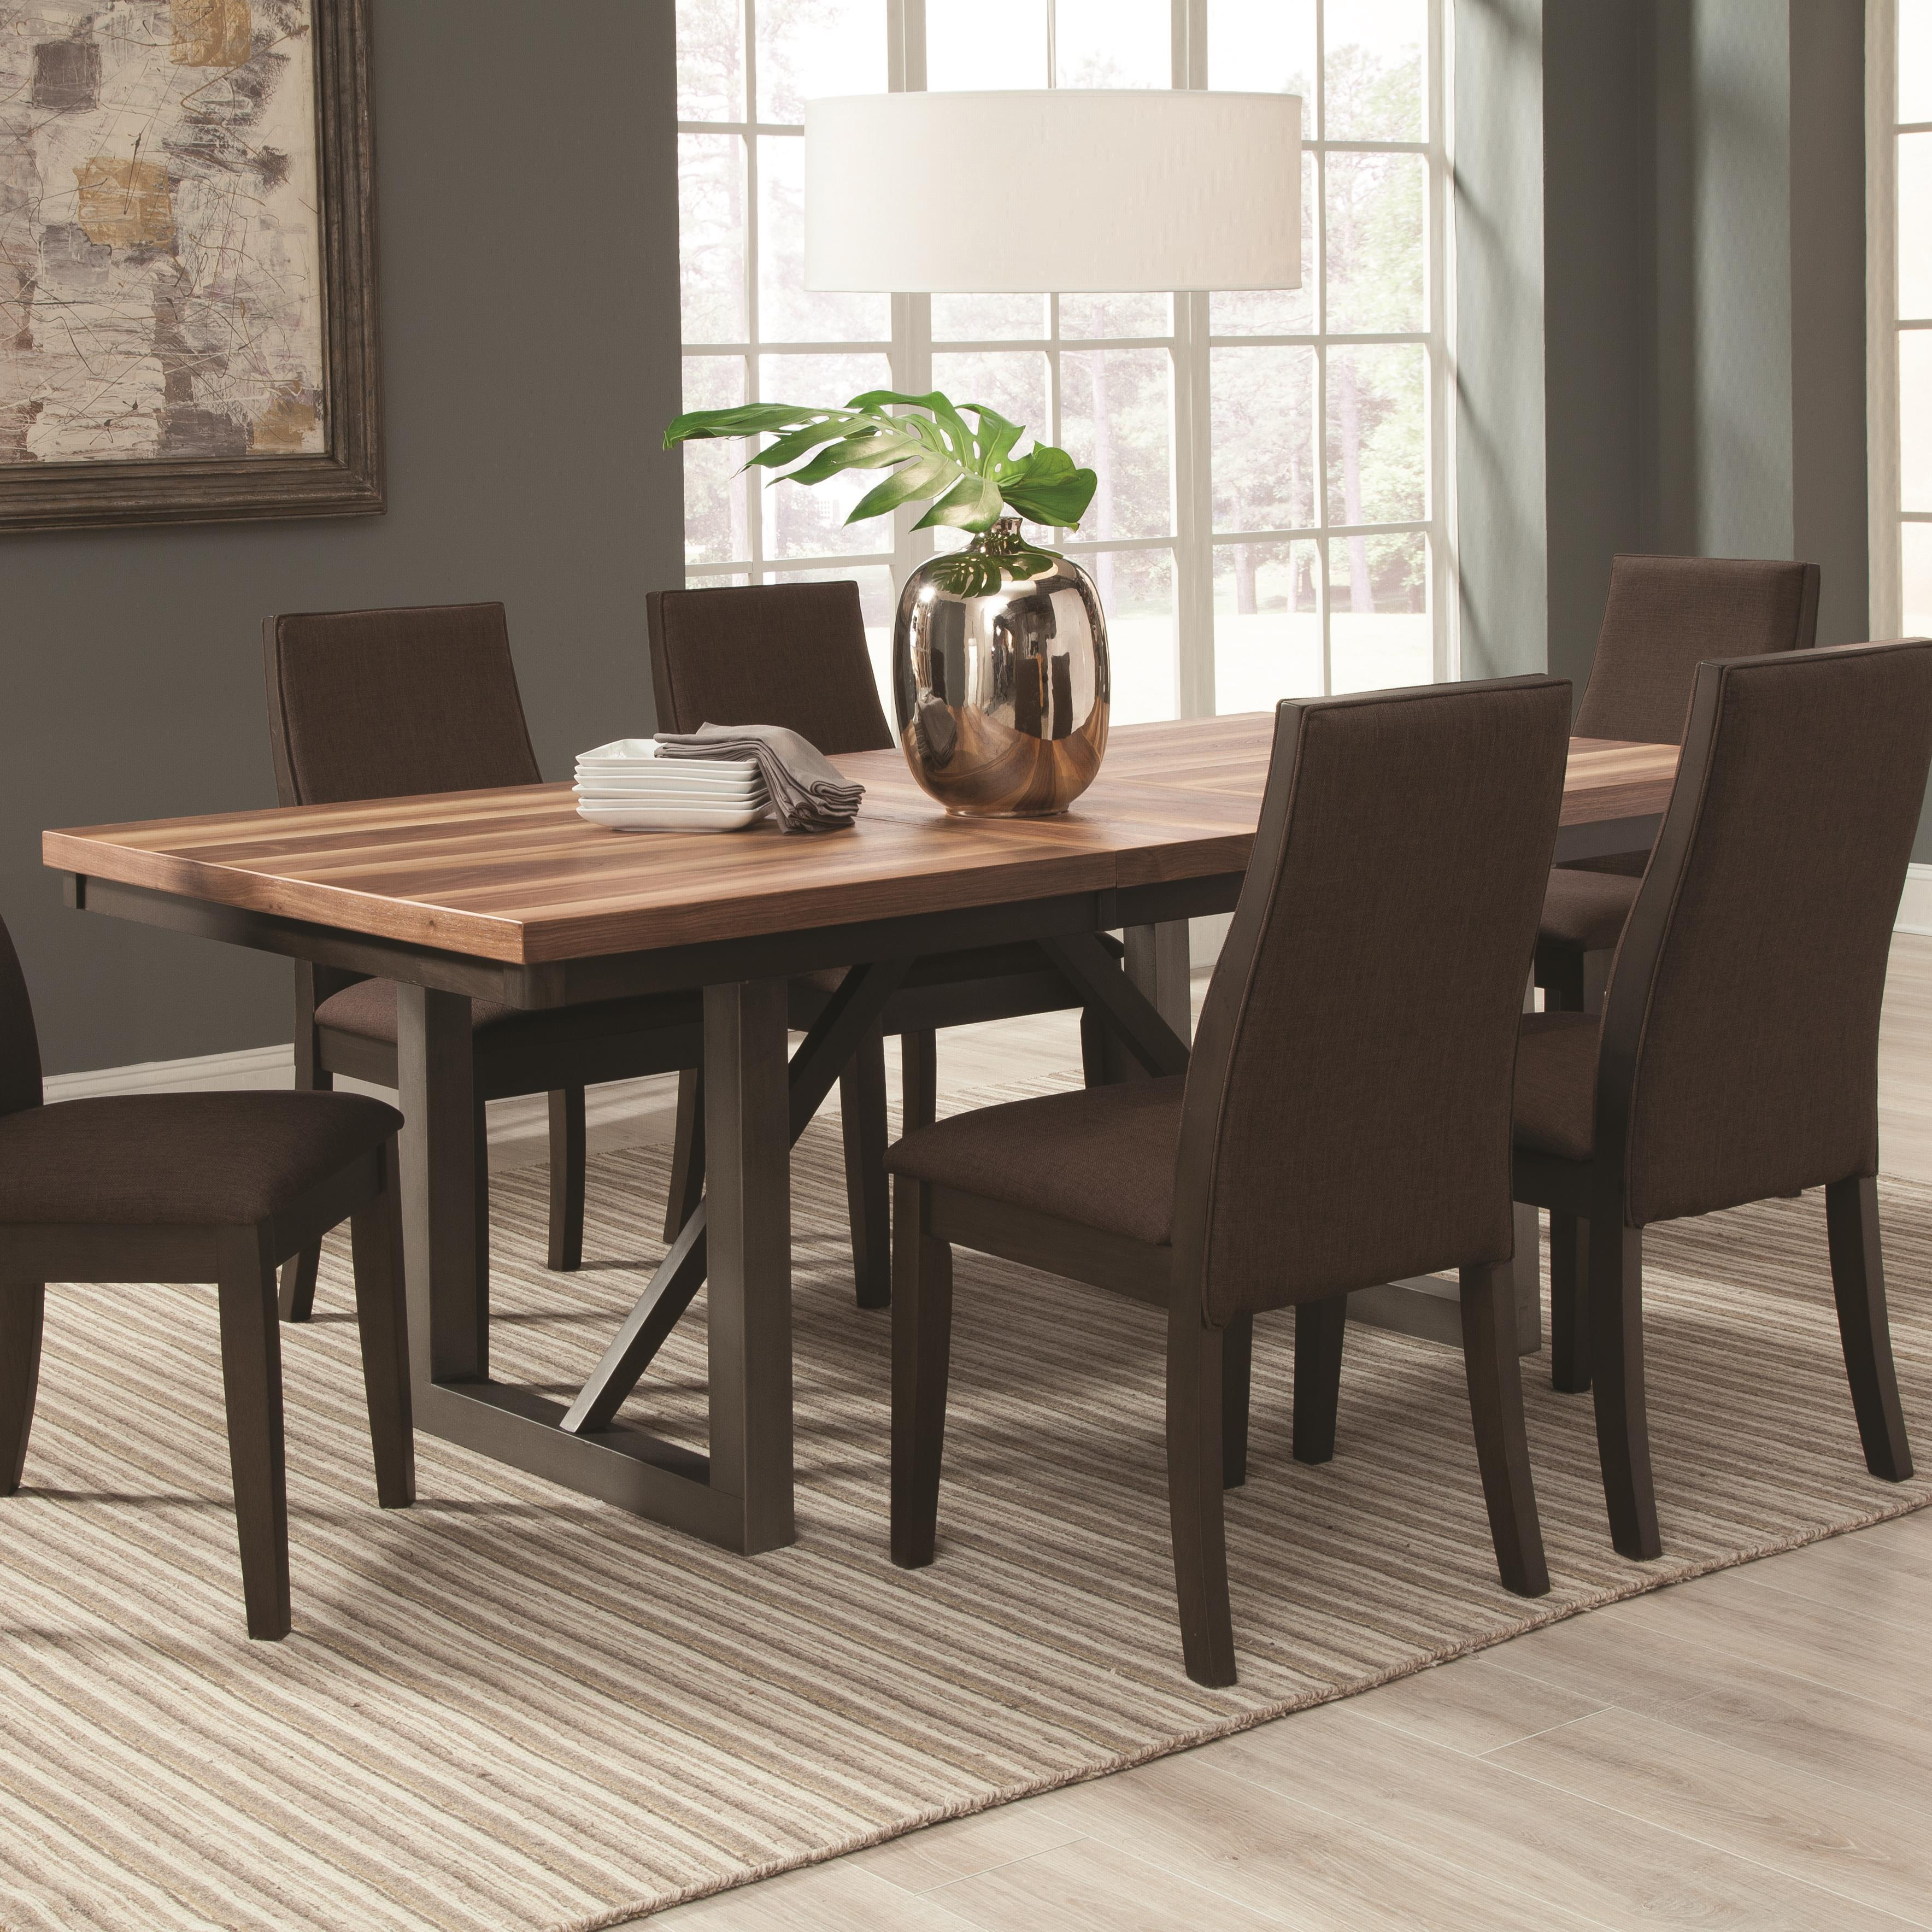 Spring Creek Dining Table by Coaster at Lapeer Furniture & Mattress Center